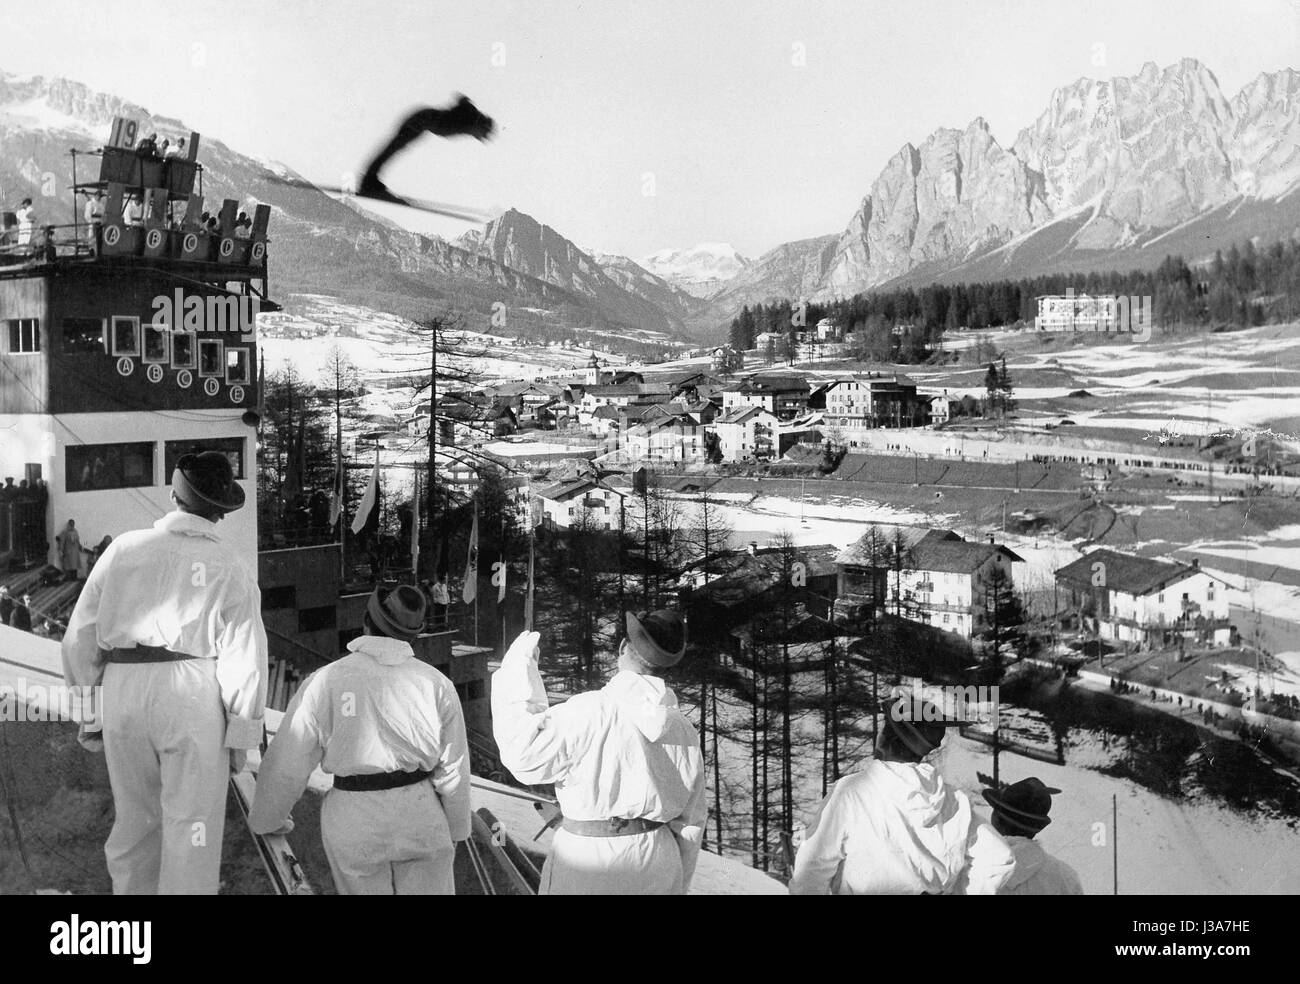 Ski jumping at the Winter Games in Cortina, 1956 - Stock Image